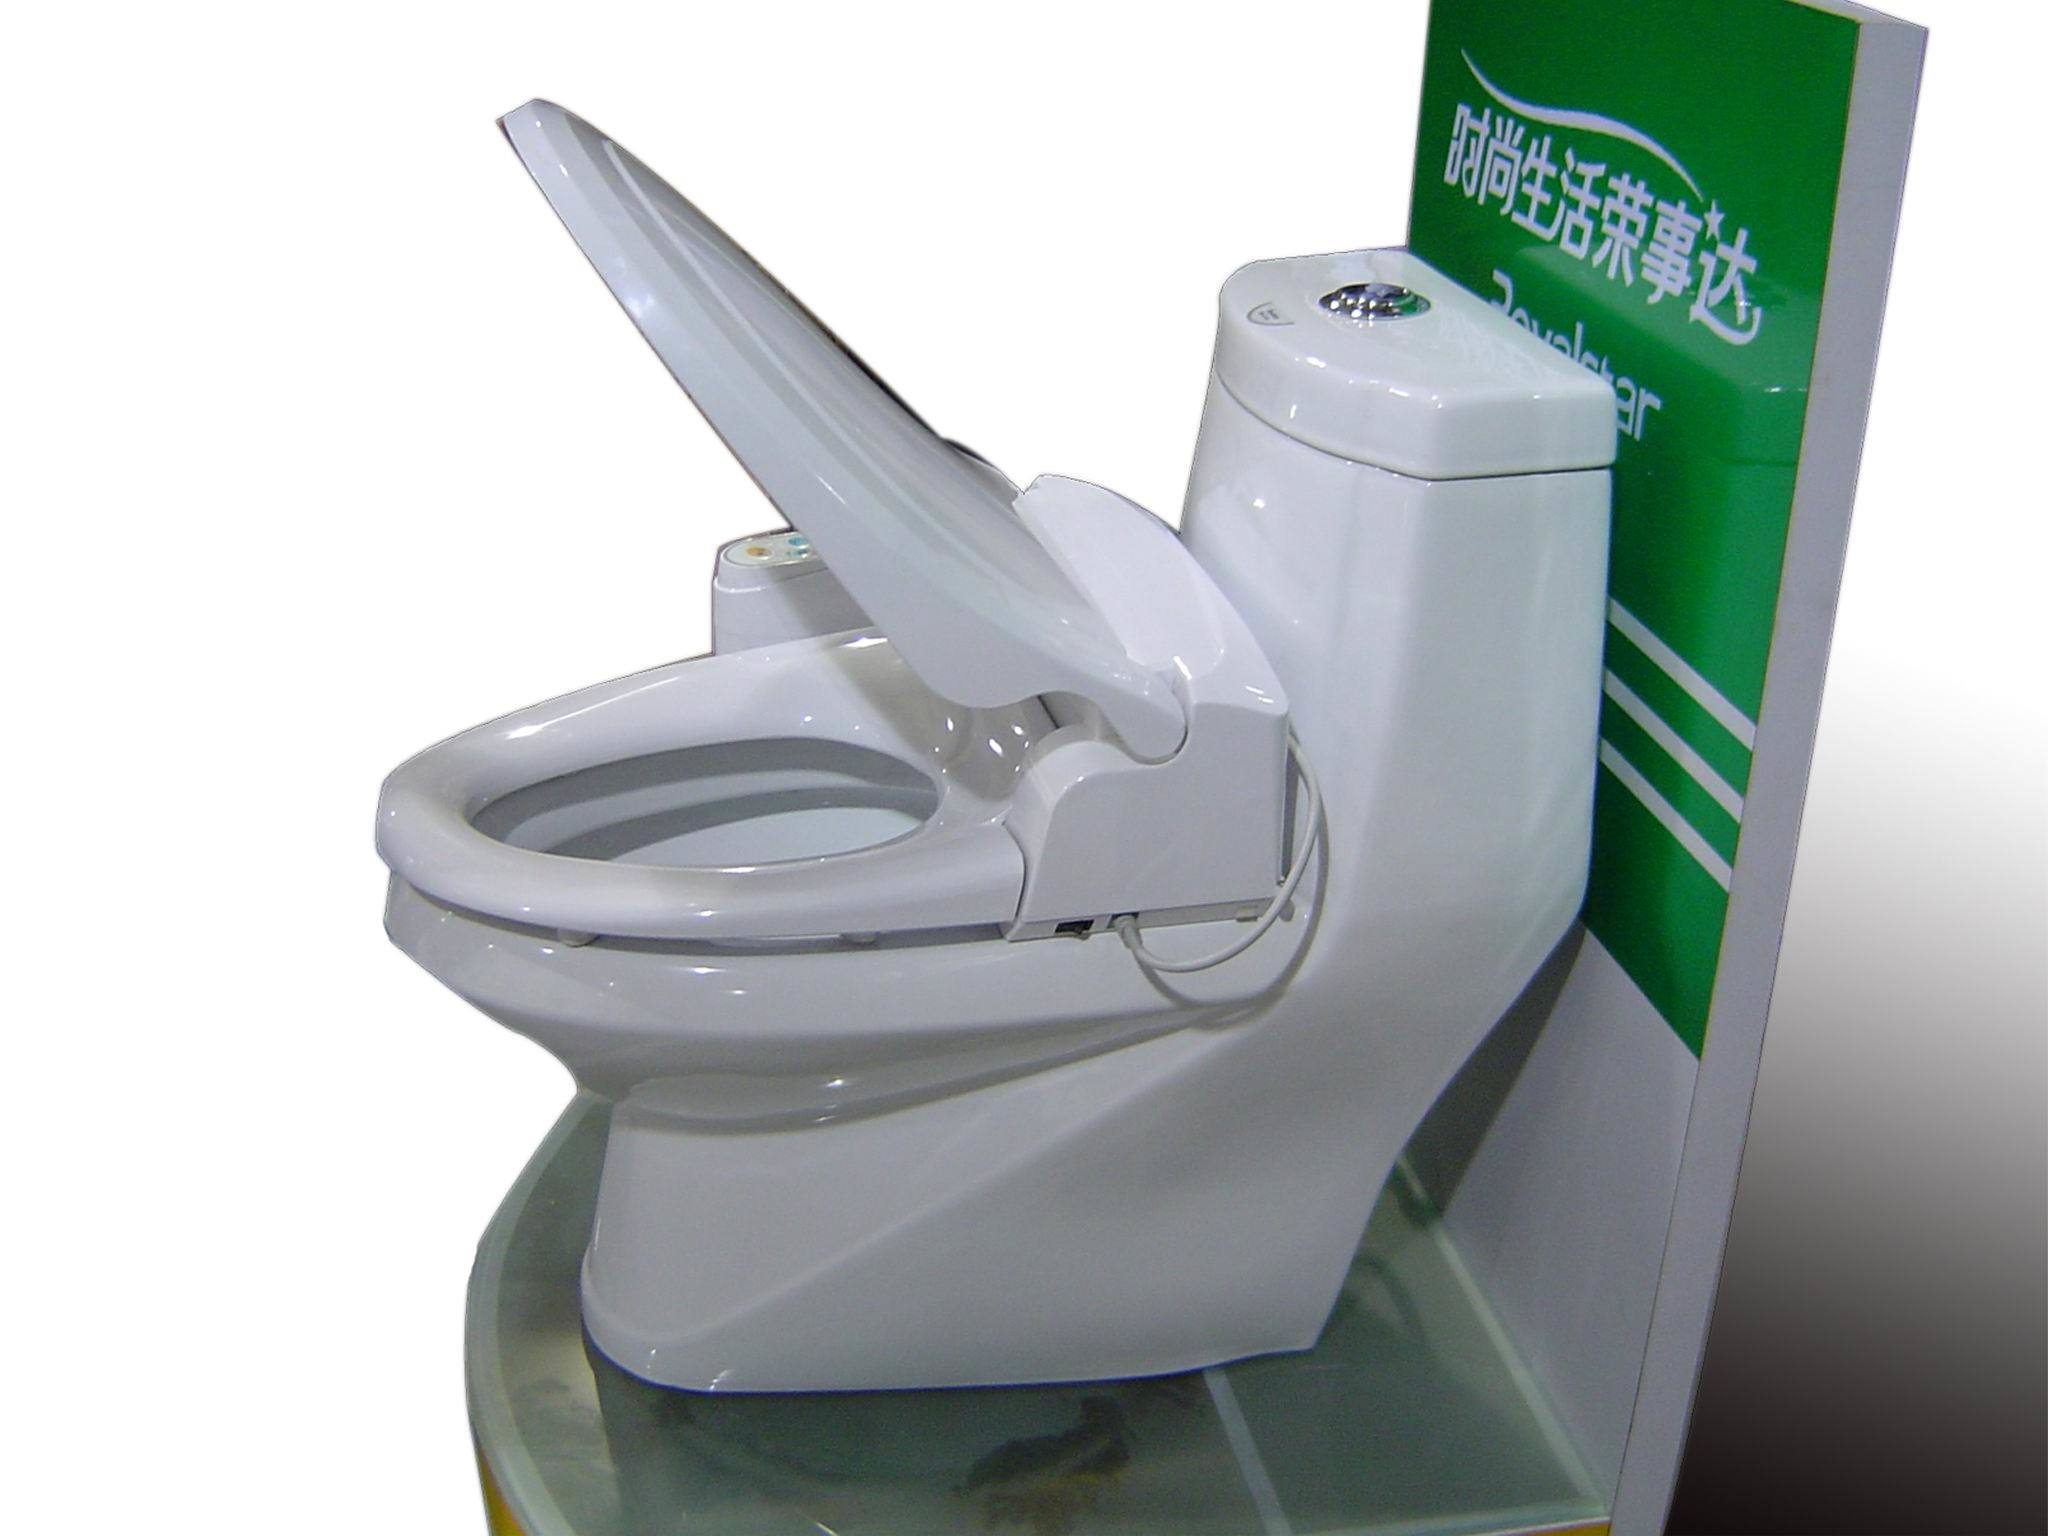 China automatic bidet toilet seat rsd 3110 photos pictures made in - Automatic bidet toilet seat ...